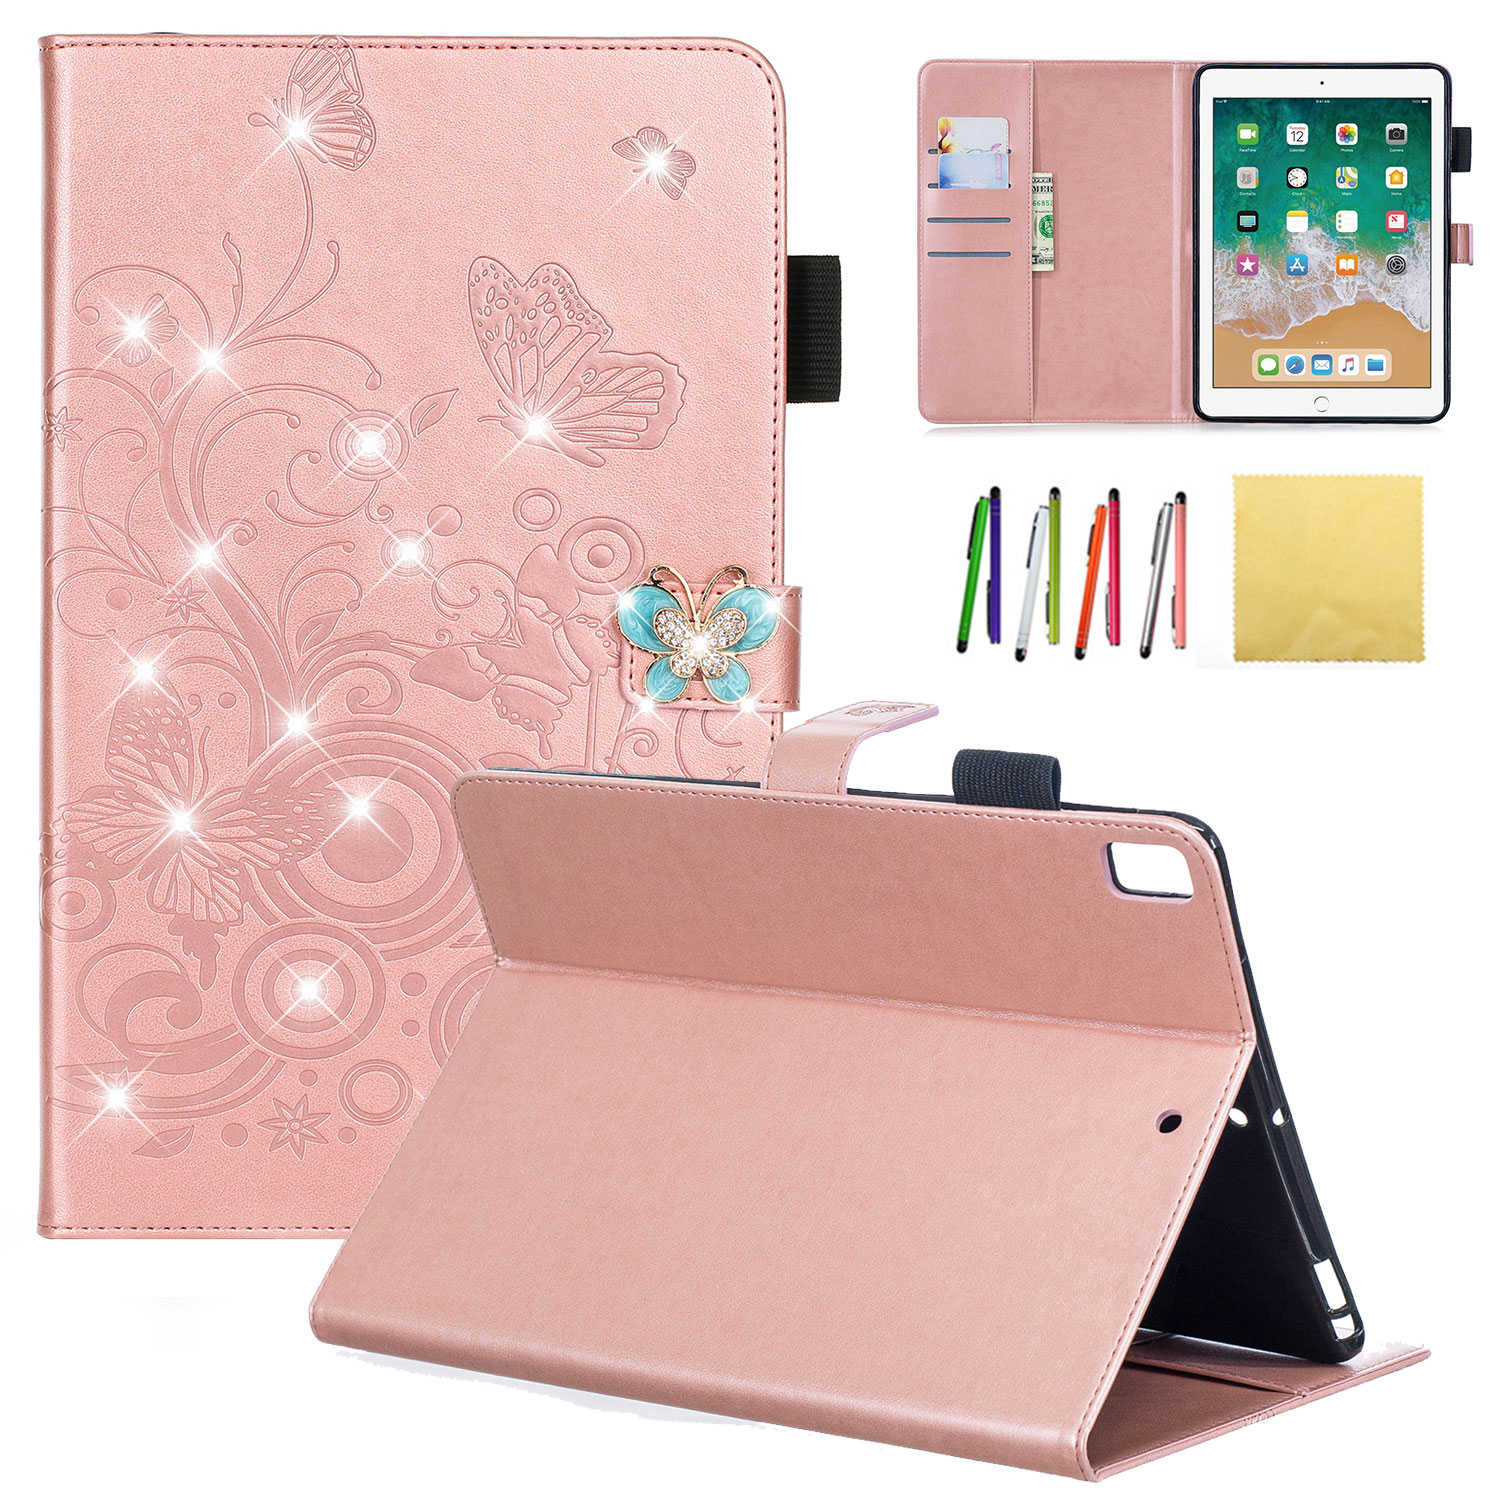 iPad 9.7 2018 &2017 Case, iPad Pro 9.7/ iPad Air 1 2 Wallet Cover, Allytech Emboss Butterfly Dianmond PU Leather Folio Case Stand for iPad 5th & 6th Gen/ iPad Pro 9.7/ iPad Air 1 2, Purple, Rosegold